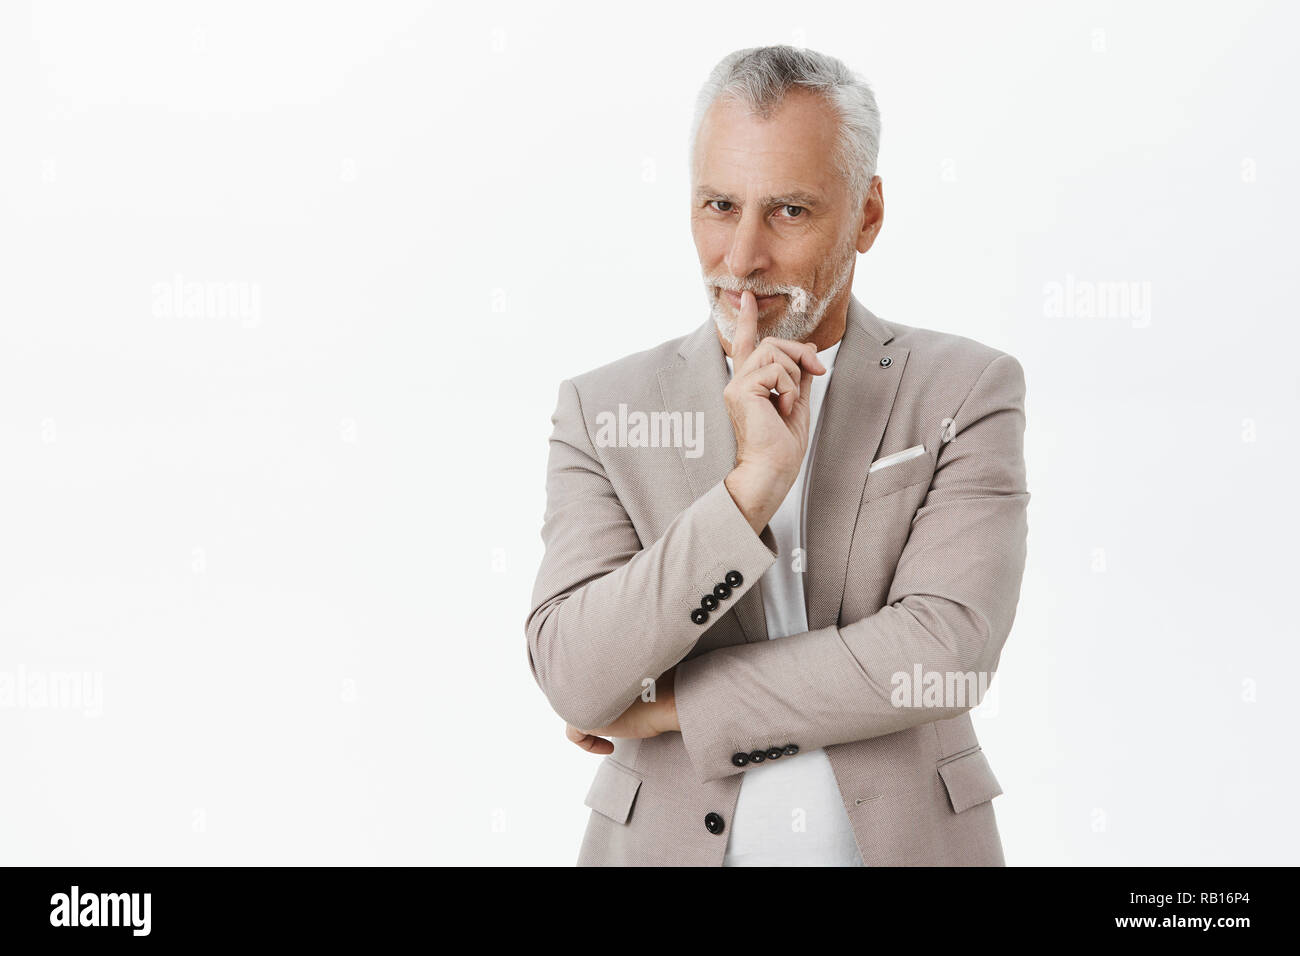 Enthusiastic and creative charming senior businessman with white hair and moustache in elegant stylish grey suit showing shh gesture with index finger over mouth smiling tricky having plan or surprise - Stock Image